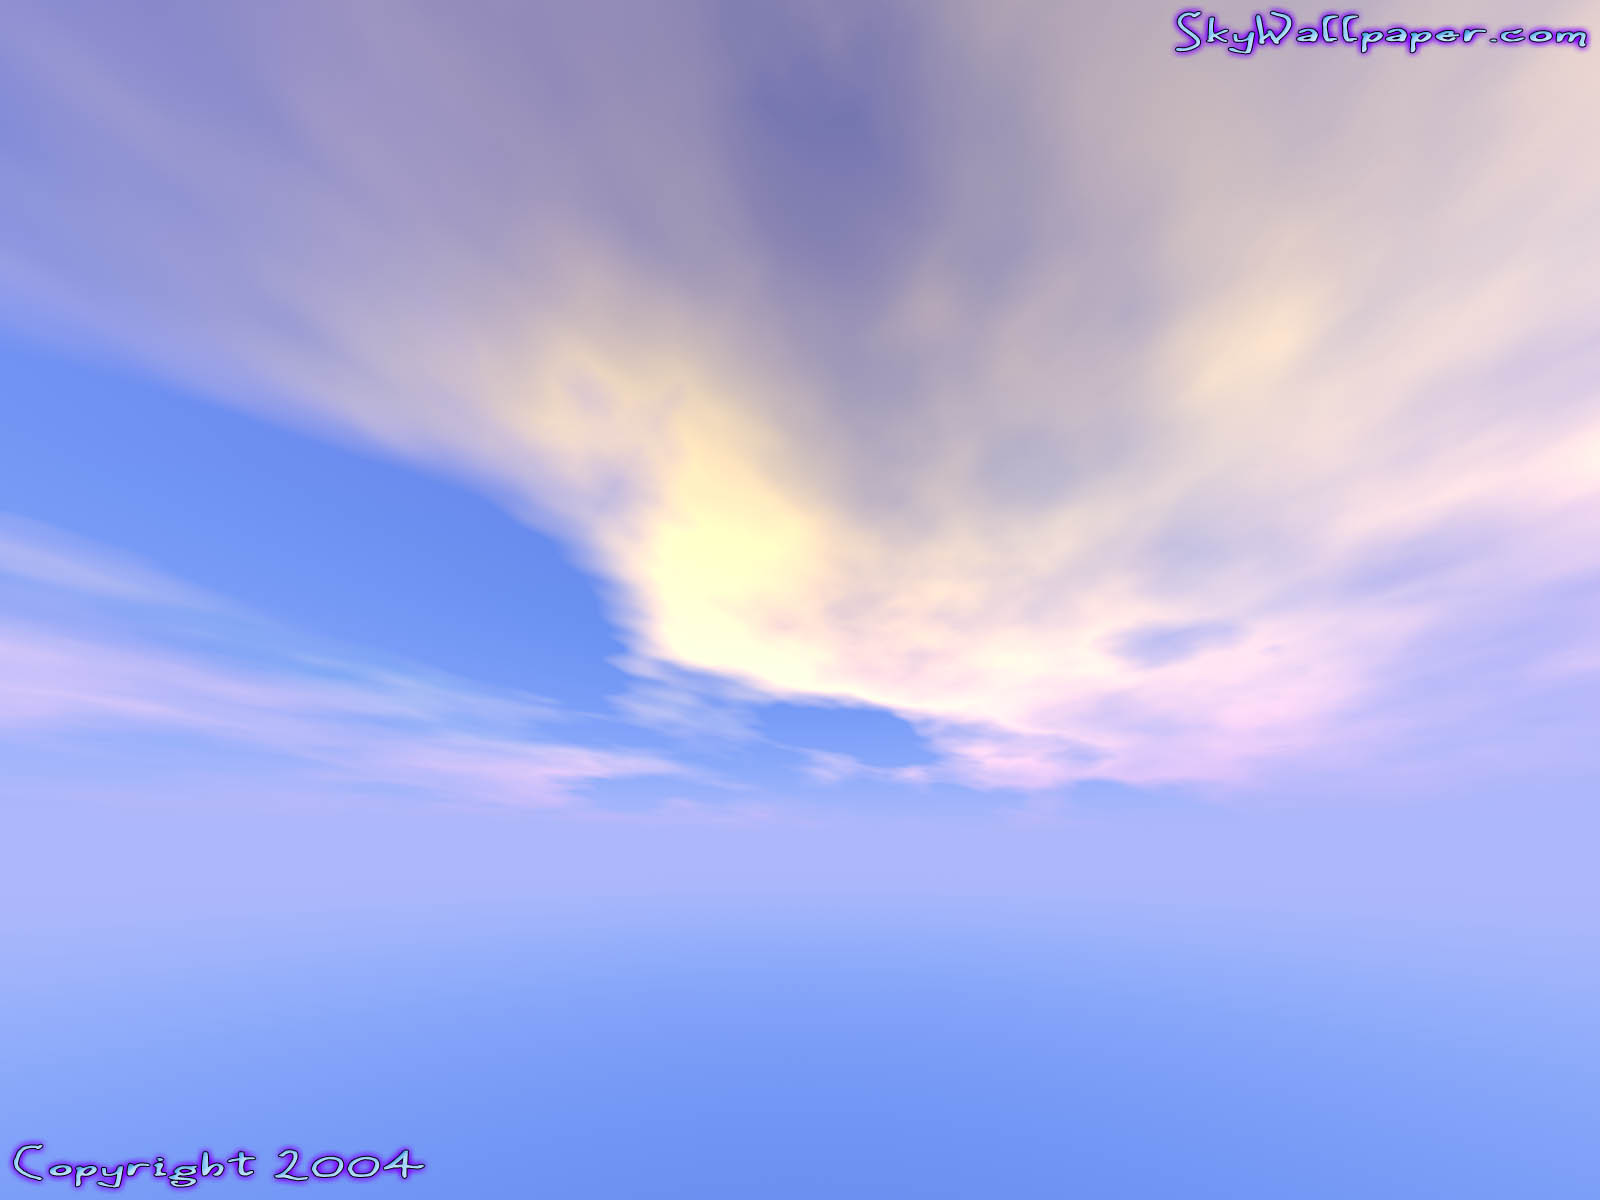 """Digital Sky Wallpaper Image"" - Wallpaper No. 92 of 109. Right click for saving options."